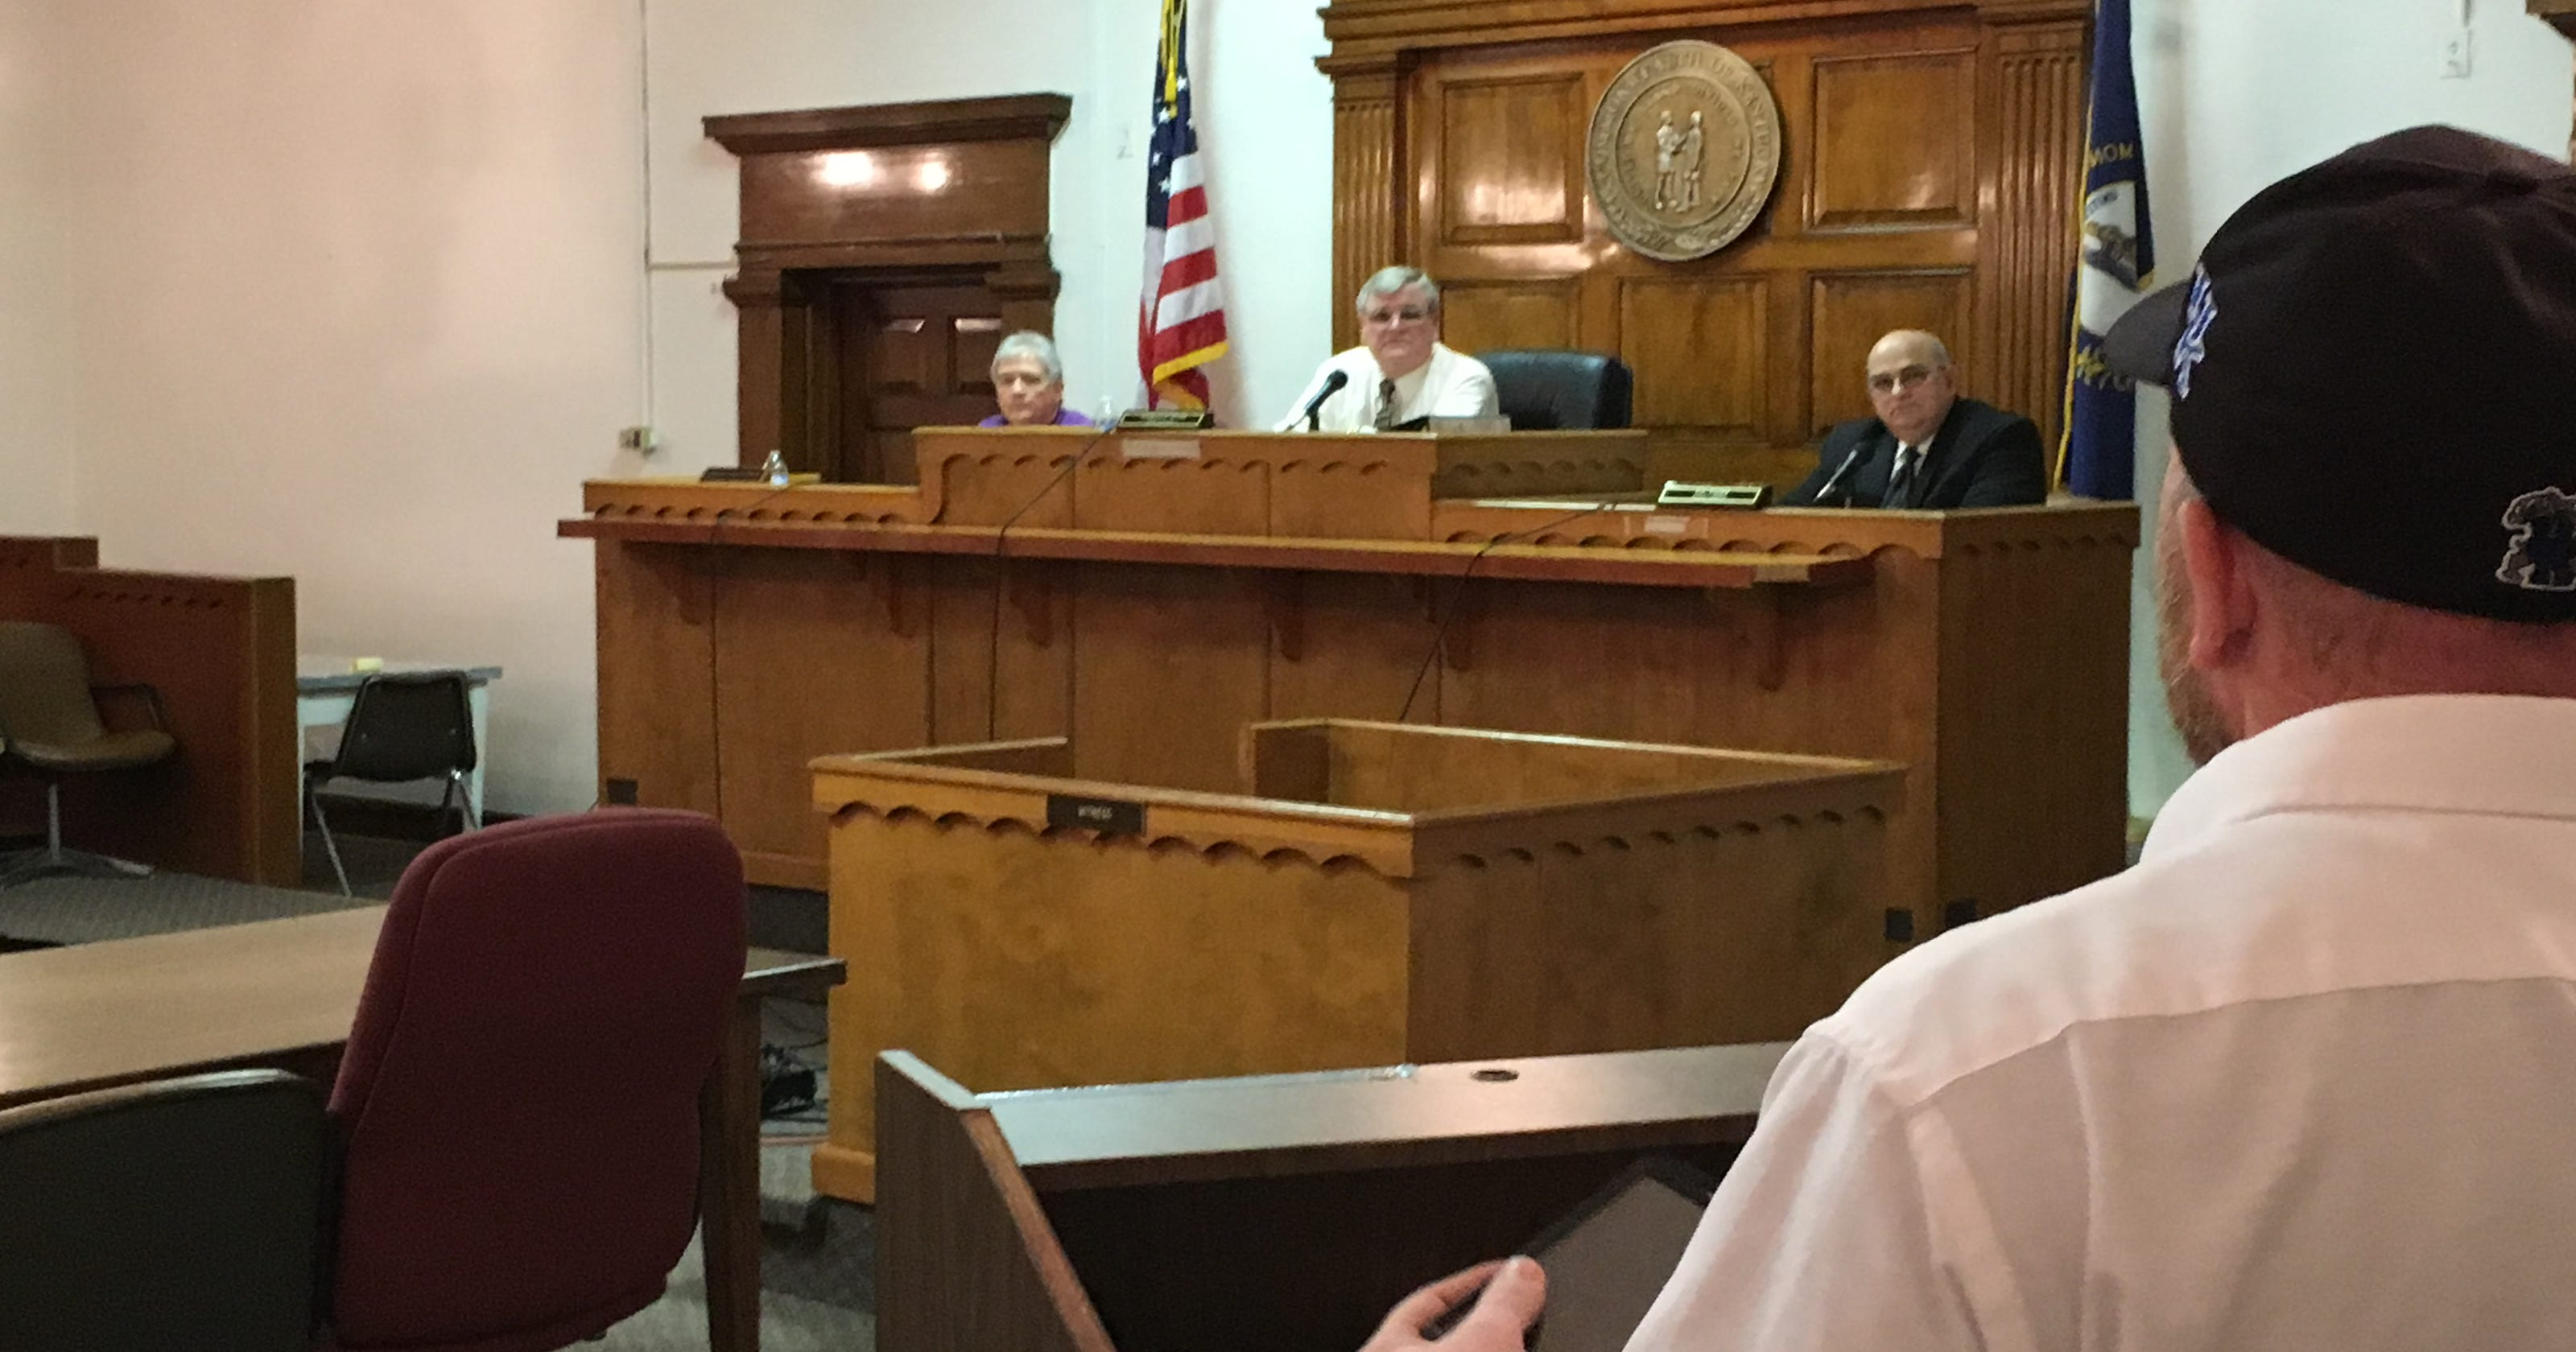 Grant County tries to get past latest scandal, political turmoil